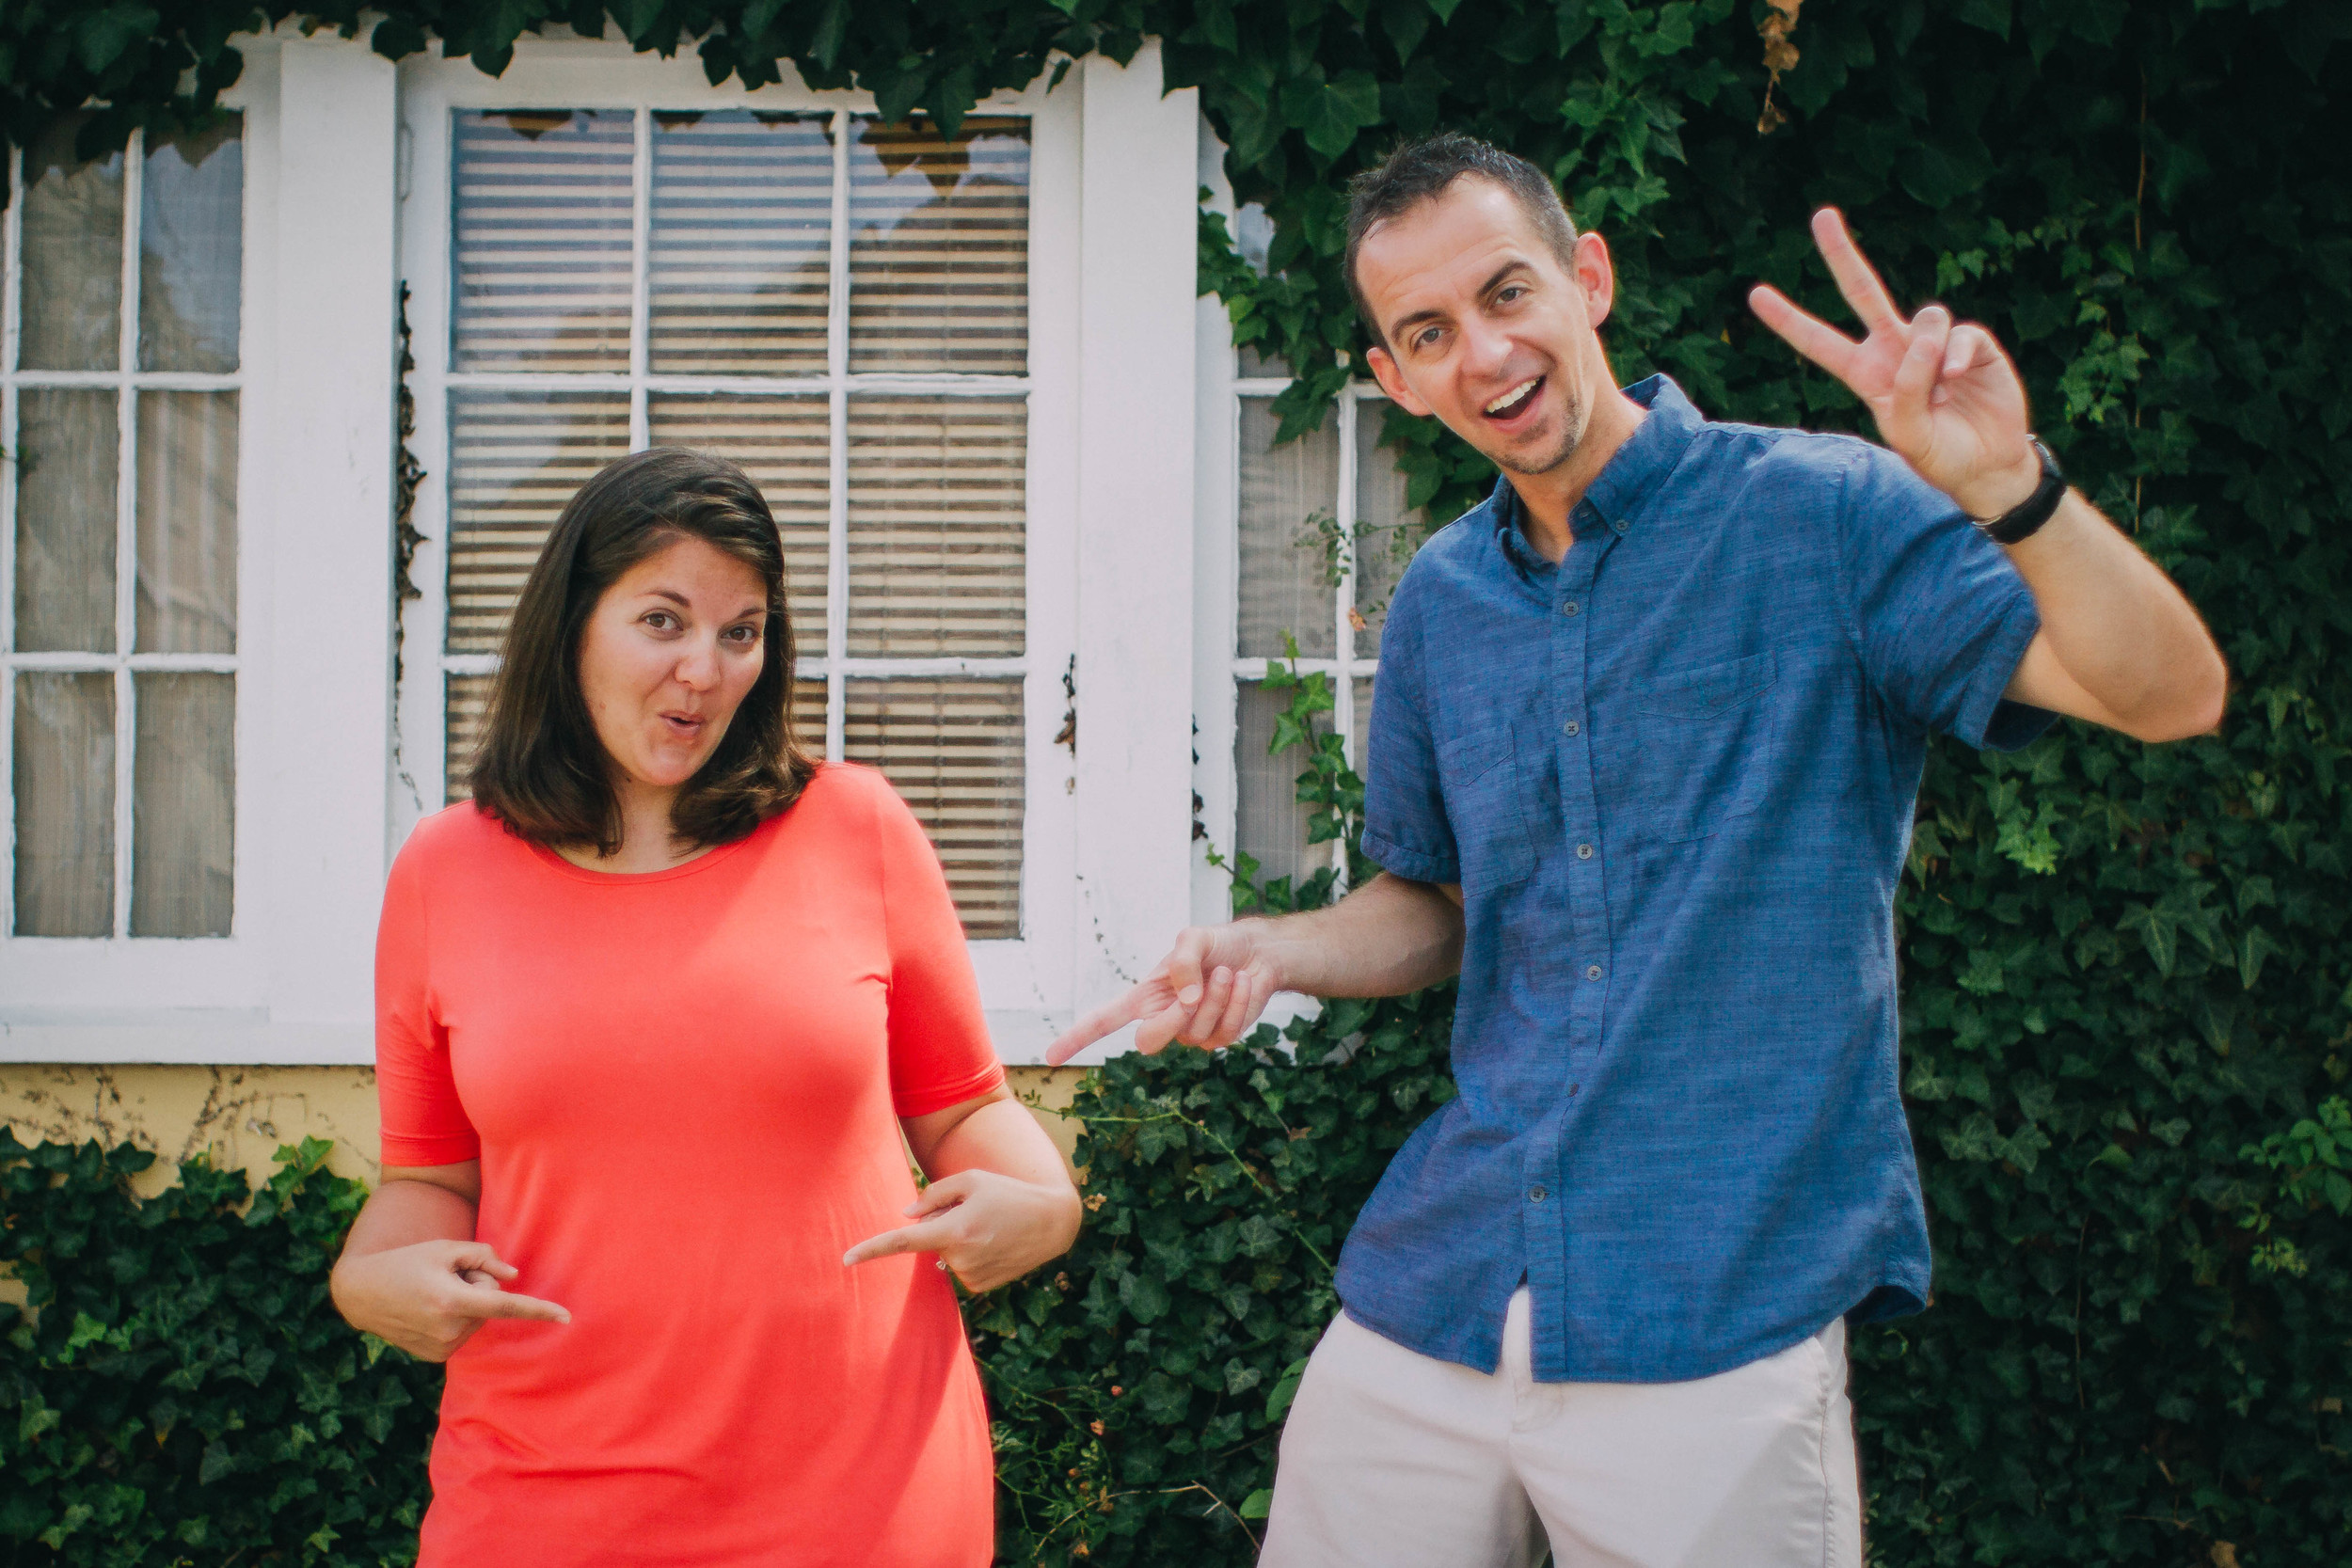 These two people are some of the most fun and loving people around, I'm excited for their two little Yorks to be welcomed into the world!